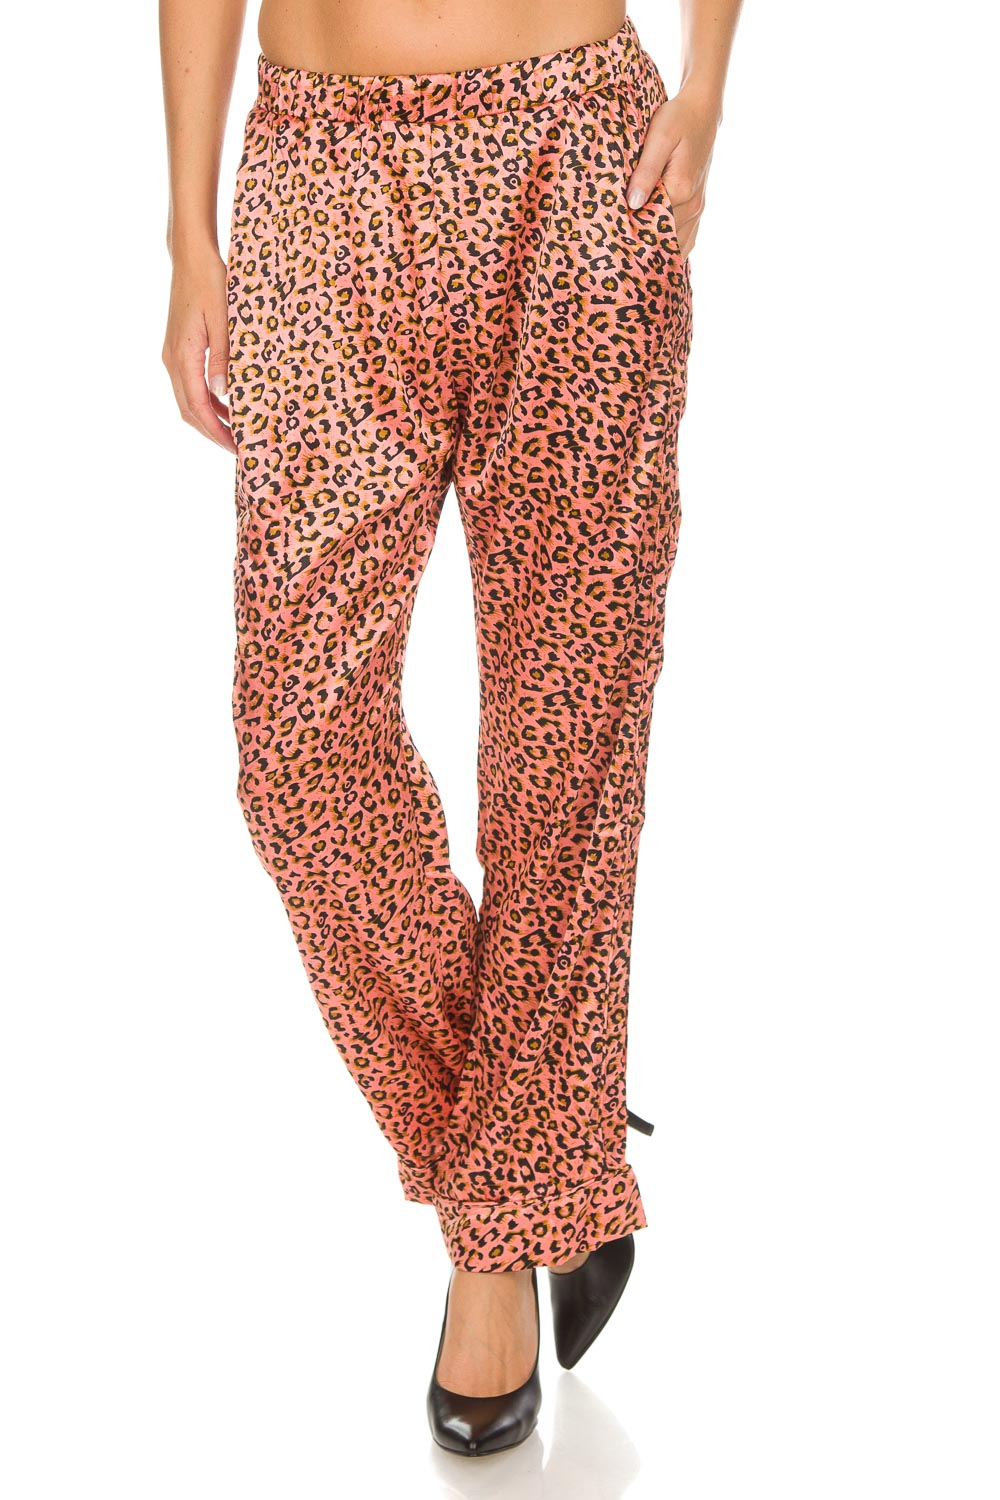 7fe088eff196 ... Lolly's Laundry | Pants Gipsy | pink | Picture ...